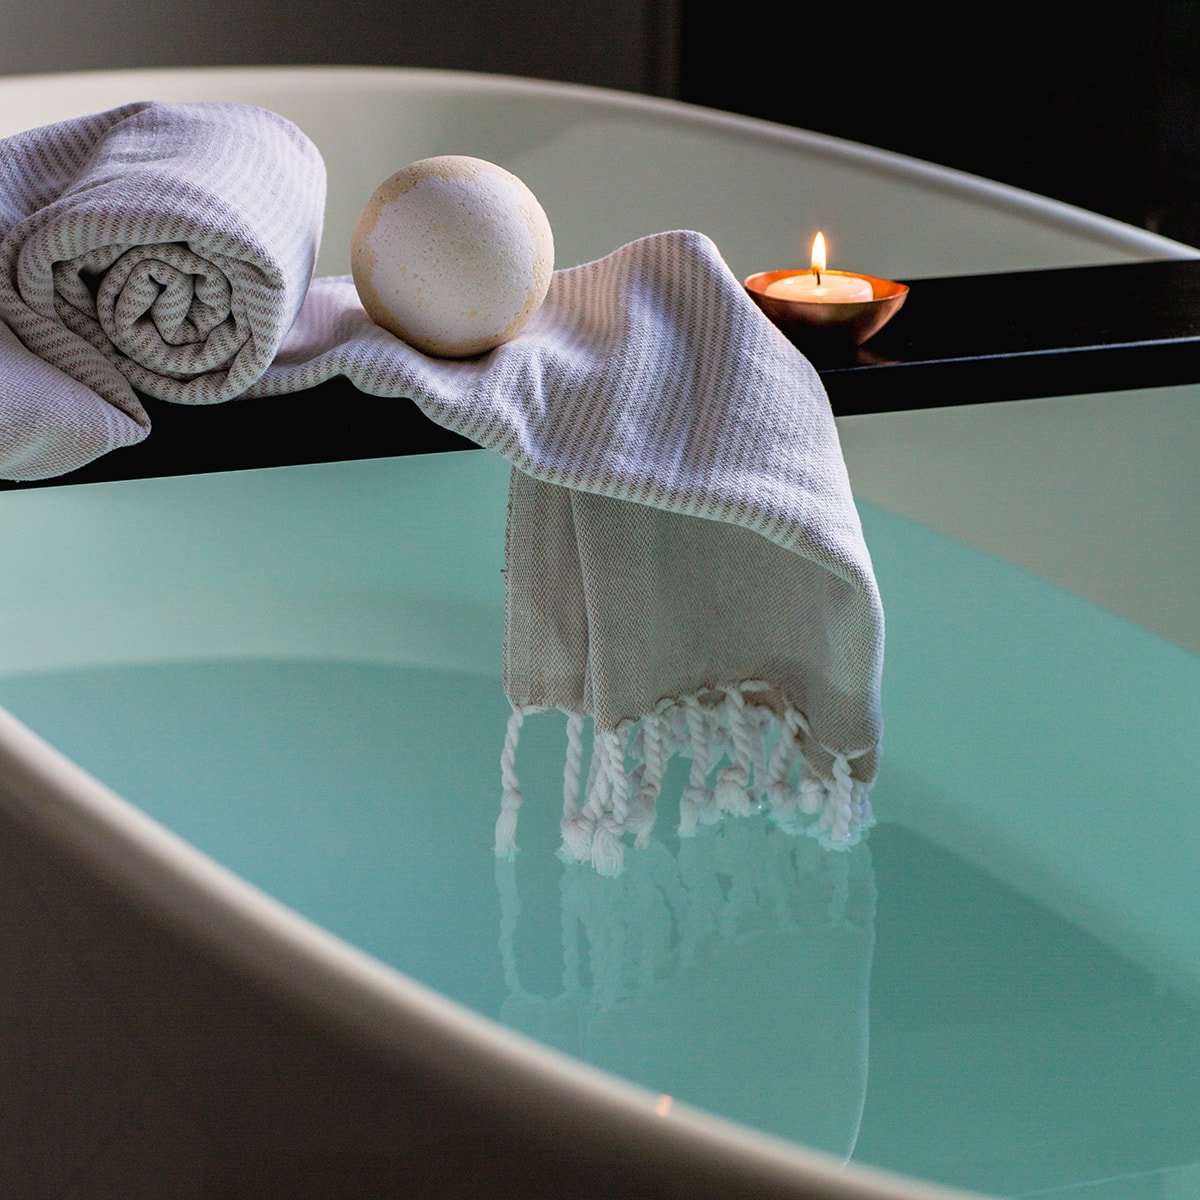 Surprising Physical and Mental Health Benefits of Bathing